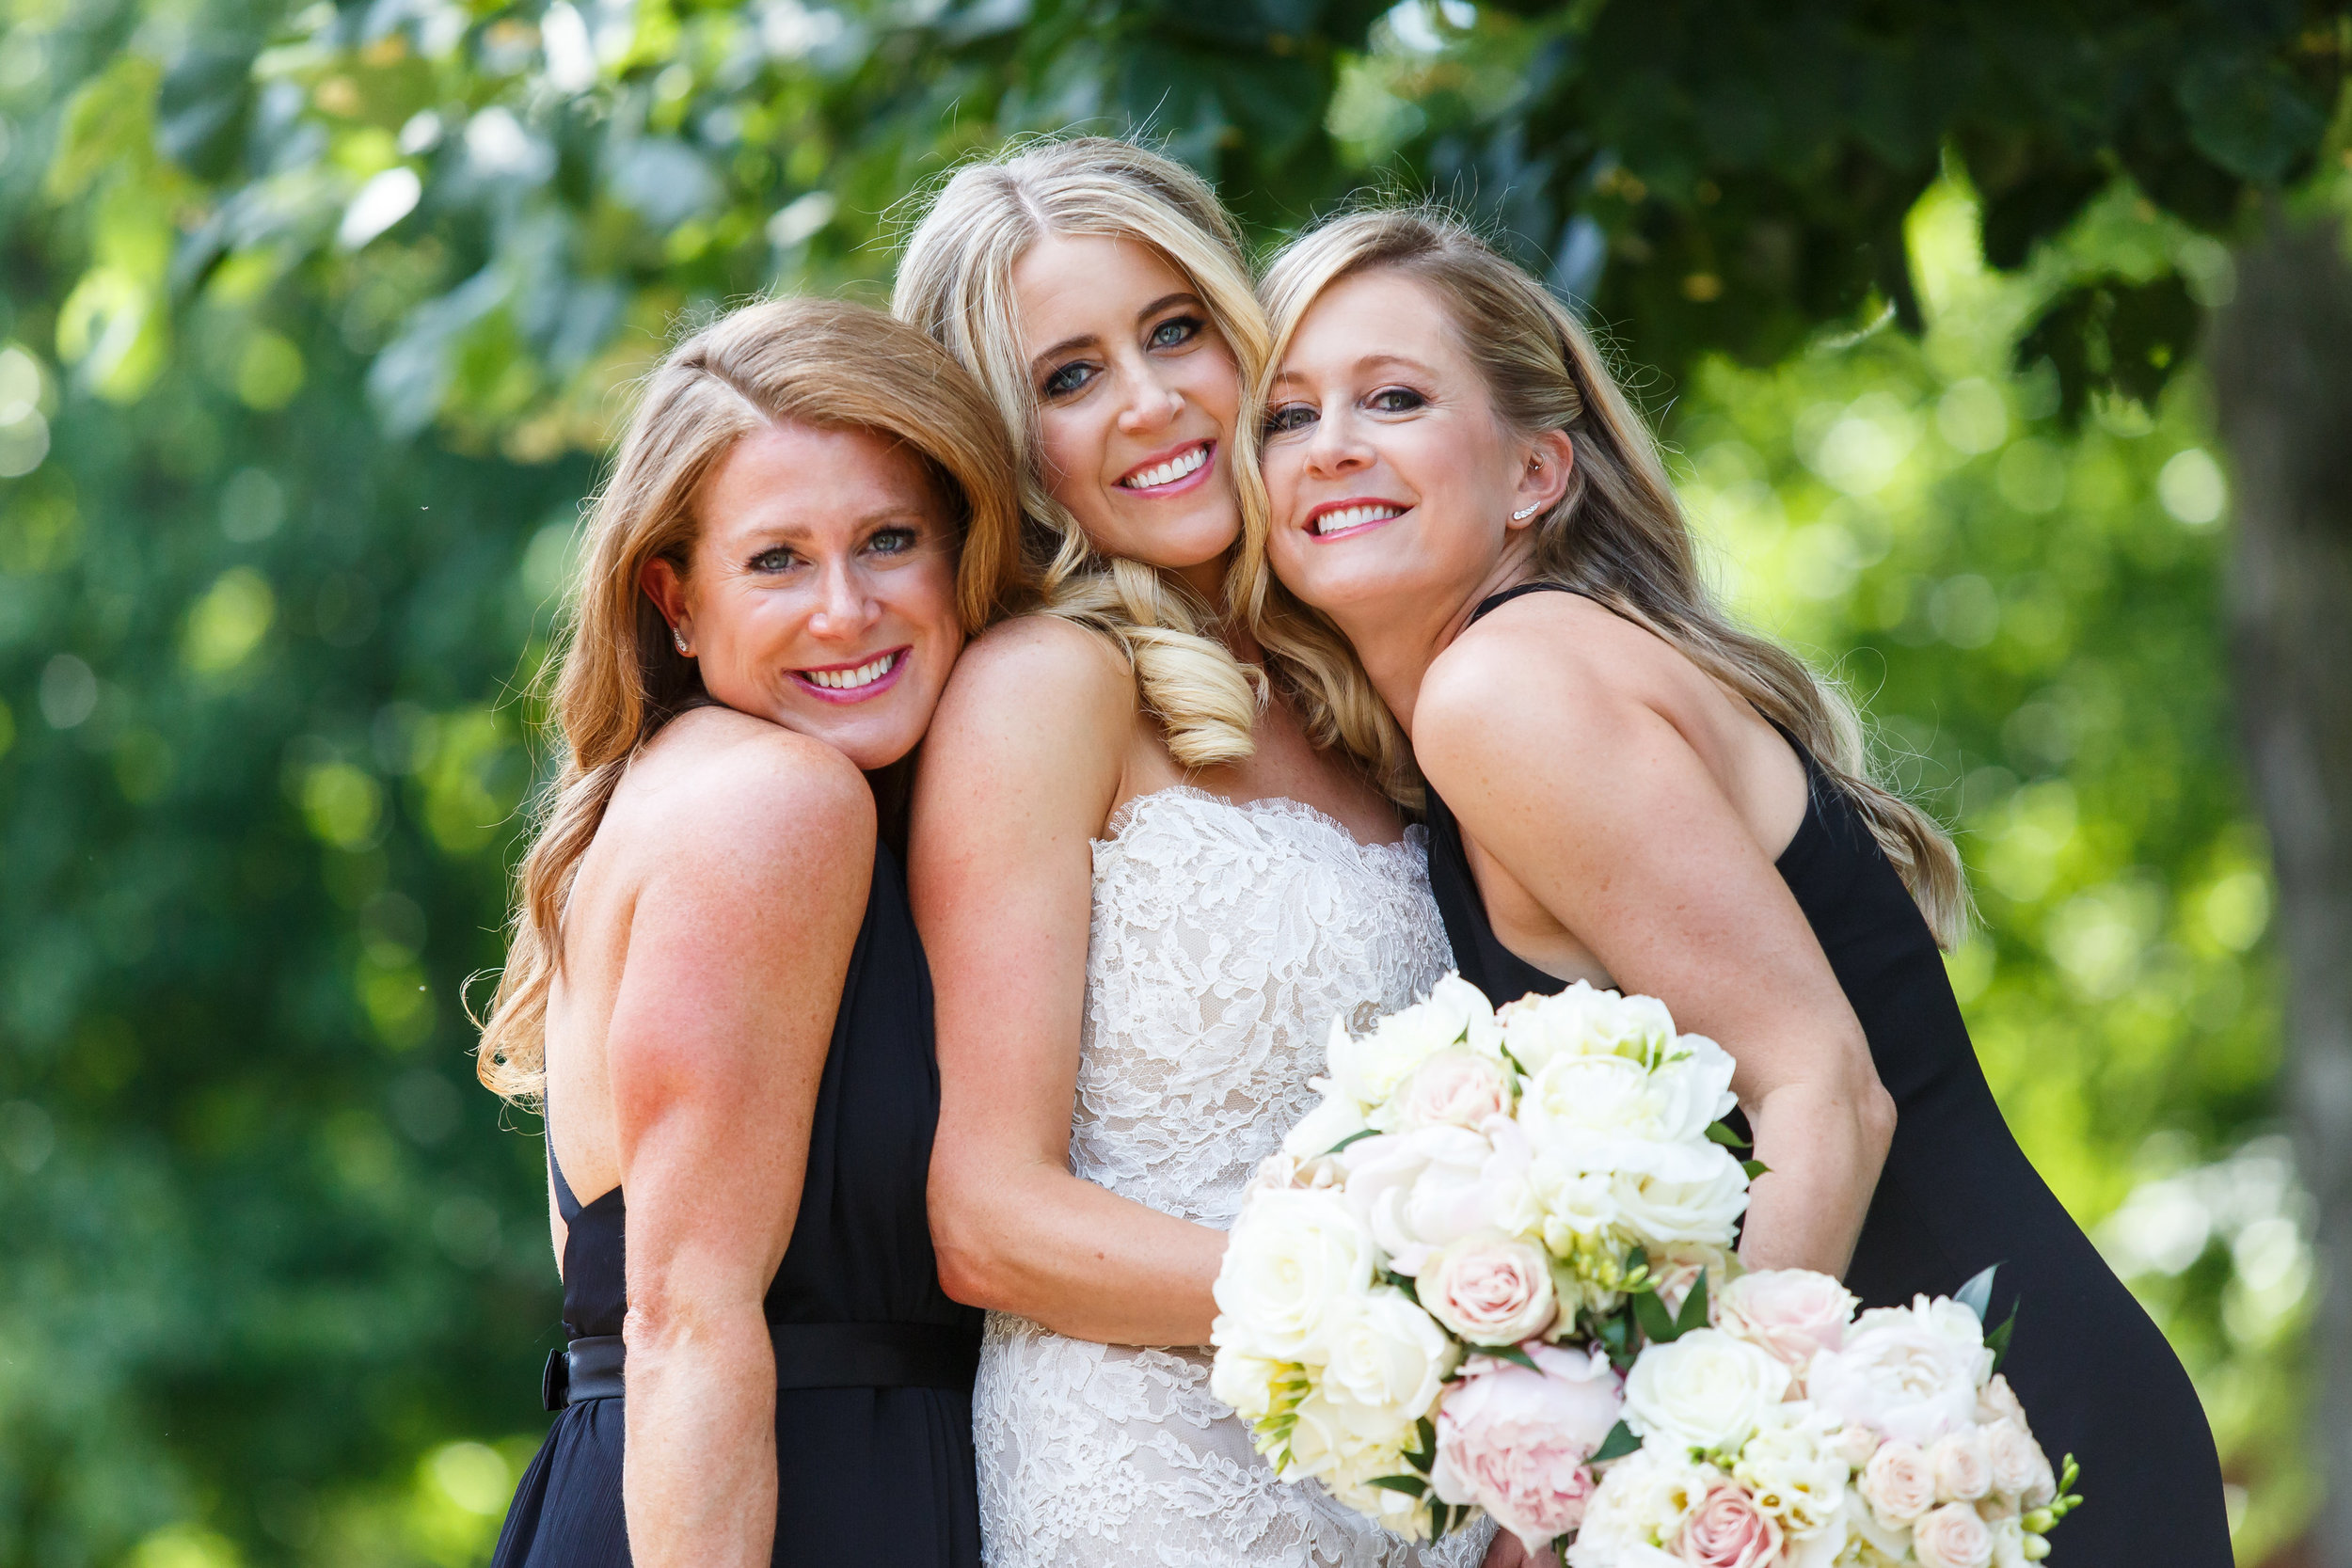 I absolutely love this picture of the bride and her two sisters!